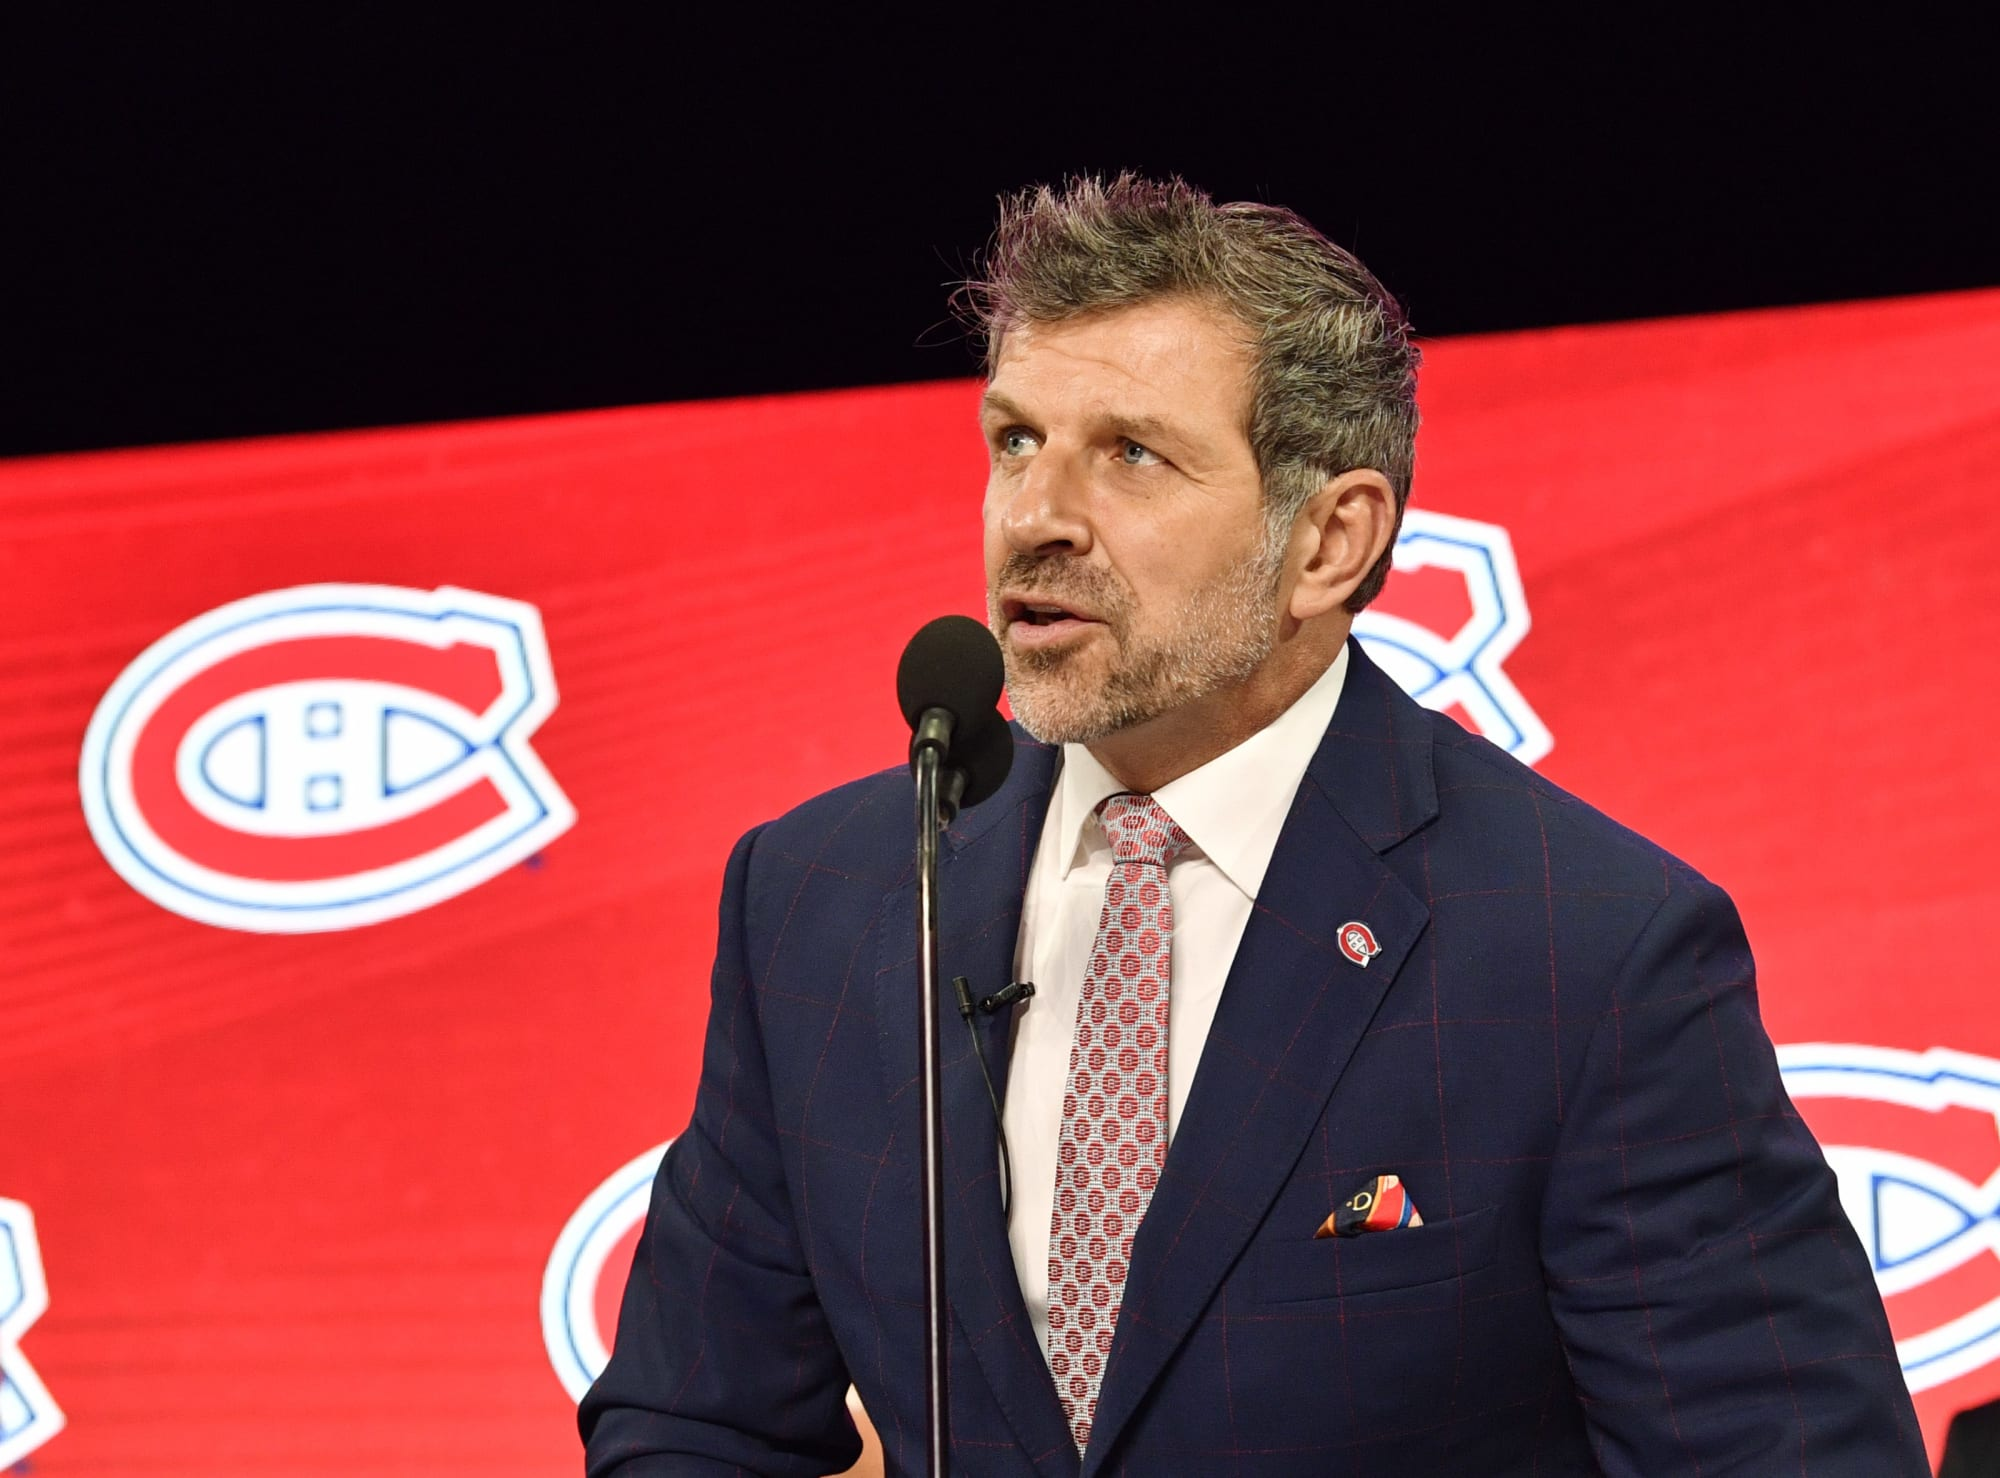 Montreal Canadiens: Marc Bergevin's Vision Leads To Award Nomination